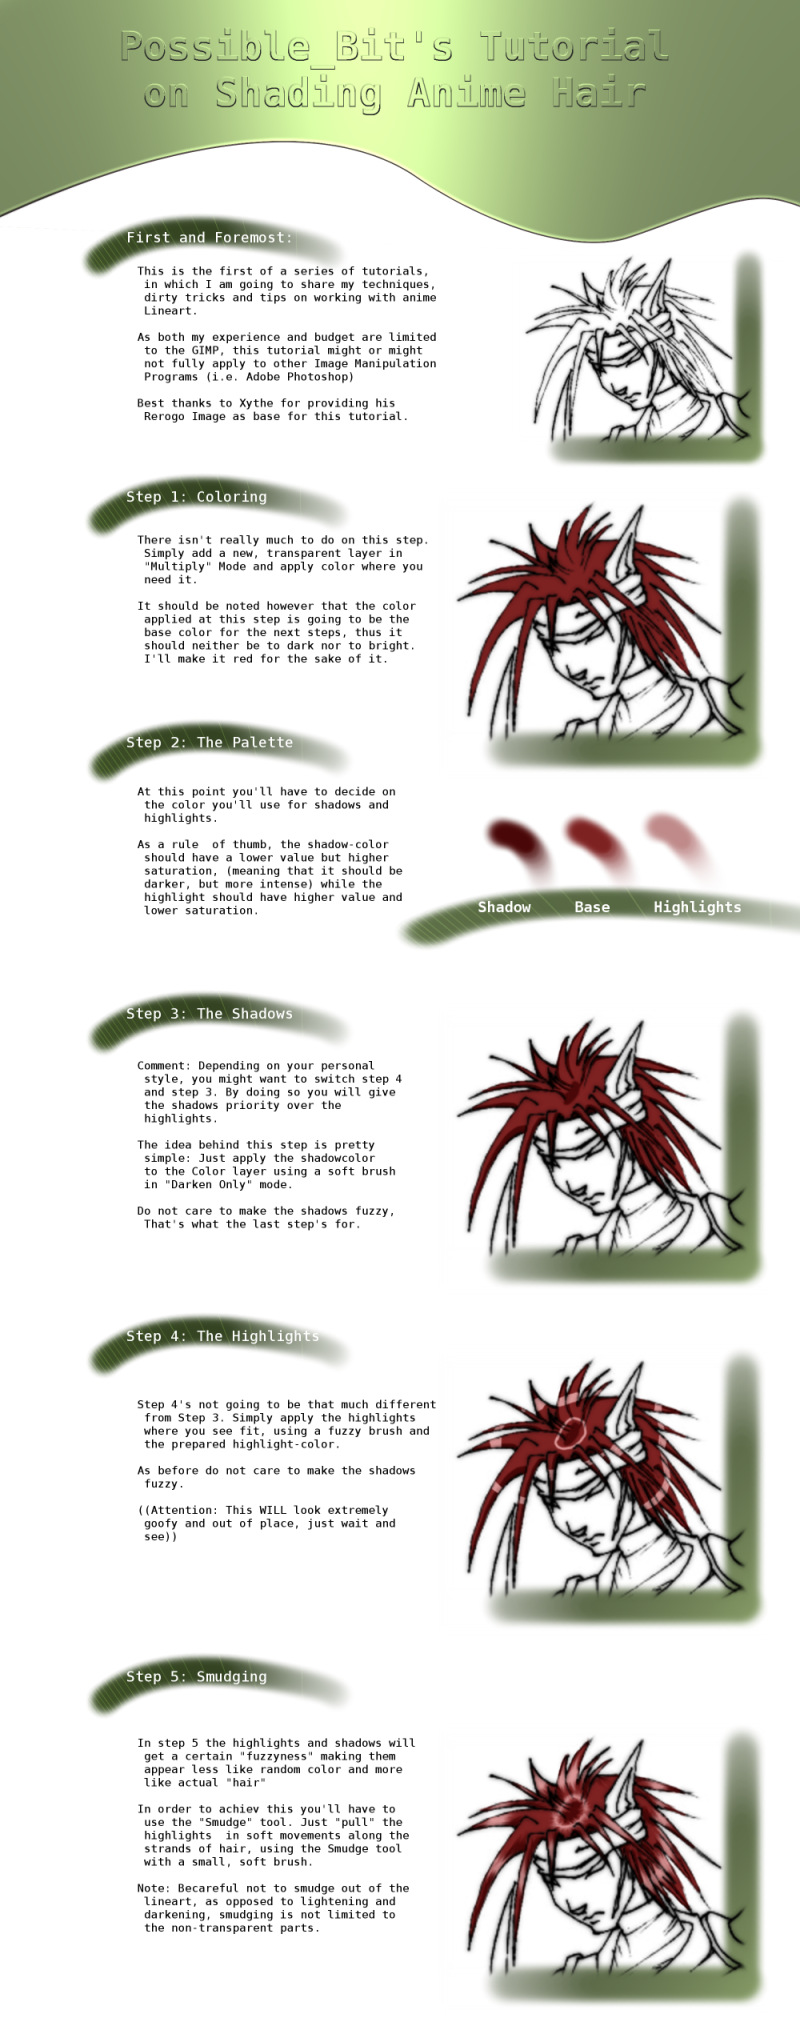 Anime-Hair Shading Tutorial by PossibleBit on DeviantArt